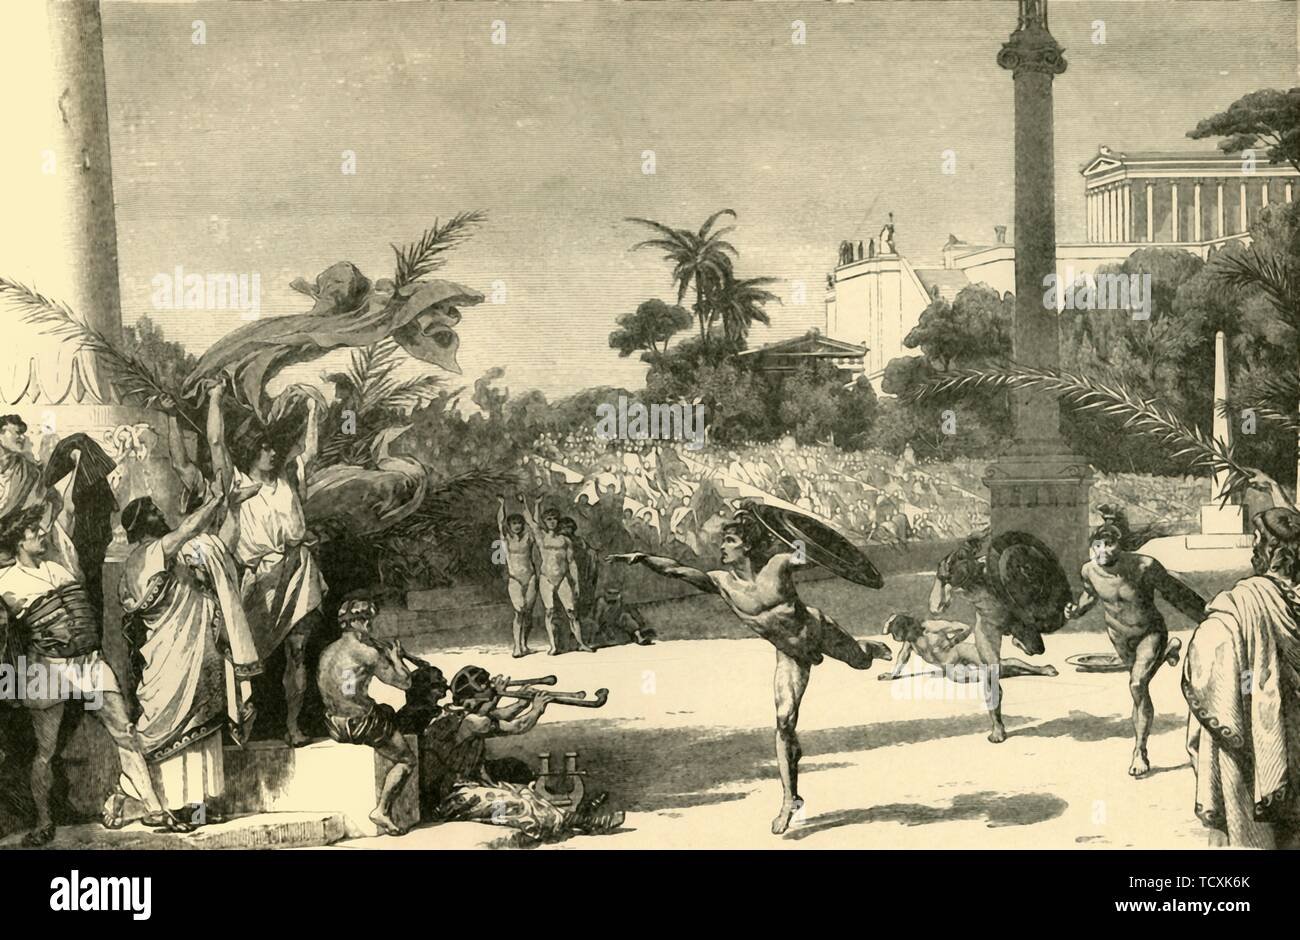 """'Olympic Games', 1890. The ancient games were also a religious festival, held in honour of Zeus, king of the gods, the first Olympics is dated to 776BC. From """"Cassell's Illustrated Universal History, Vol. I - Early and Greek History"""", by Edmund Ollier. [Cassell and Company, Limited, London, Paris and Melbourne, 1890] - Stock Image"""